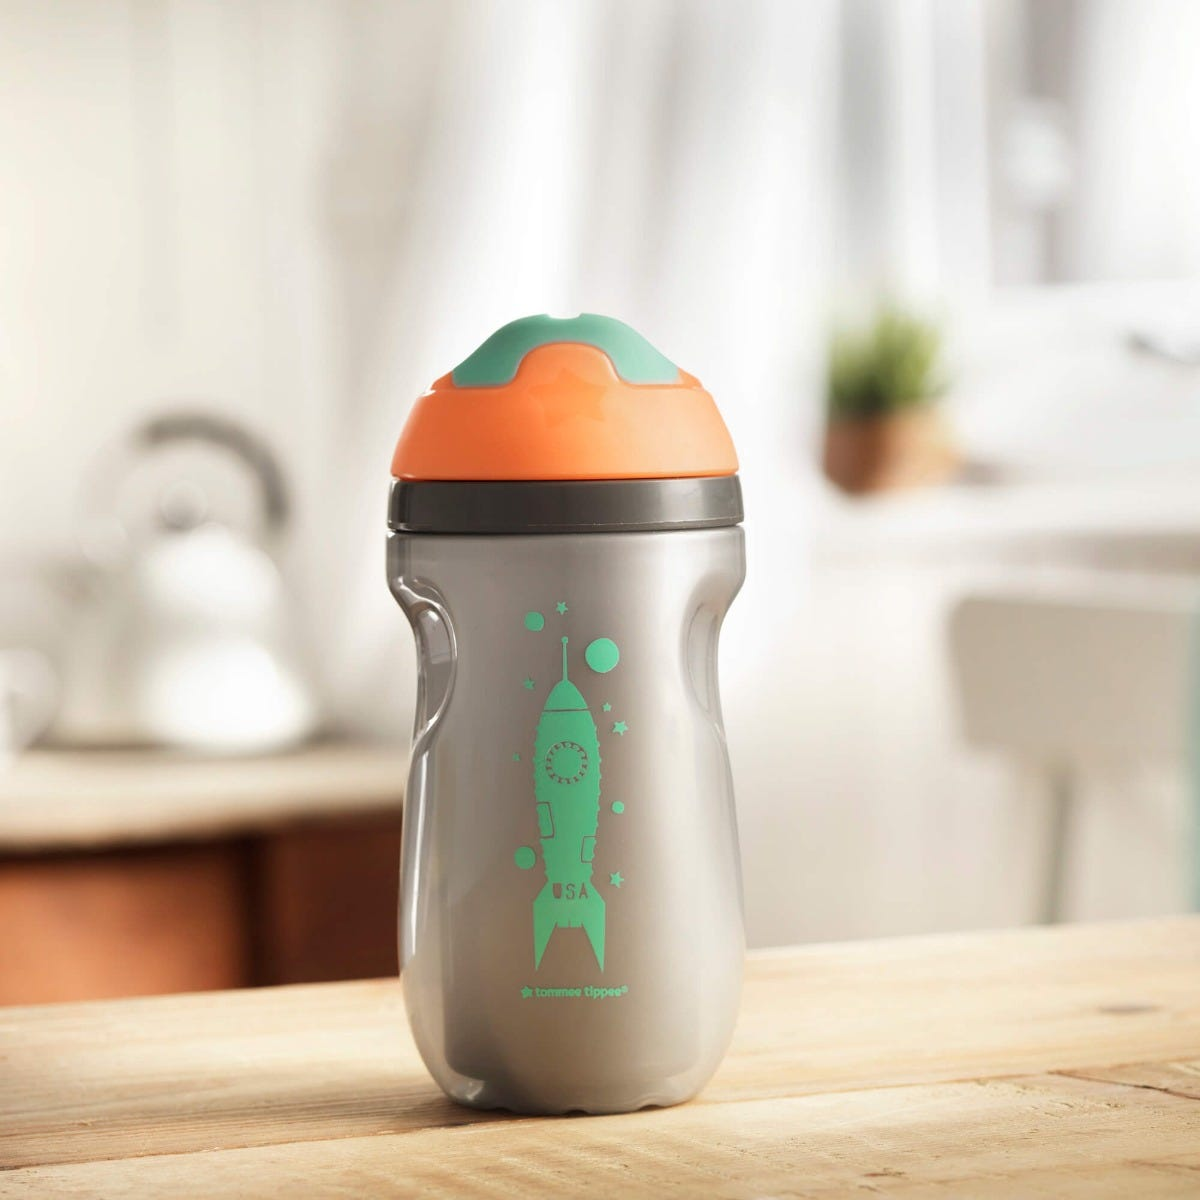 Insulated-sippee-cup-in-silver-with-orange-cap-and-aqua-spout-with-an-aqua-blue-rocket-design-sitting-on-kitchen-bench